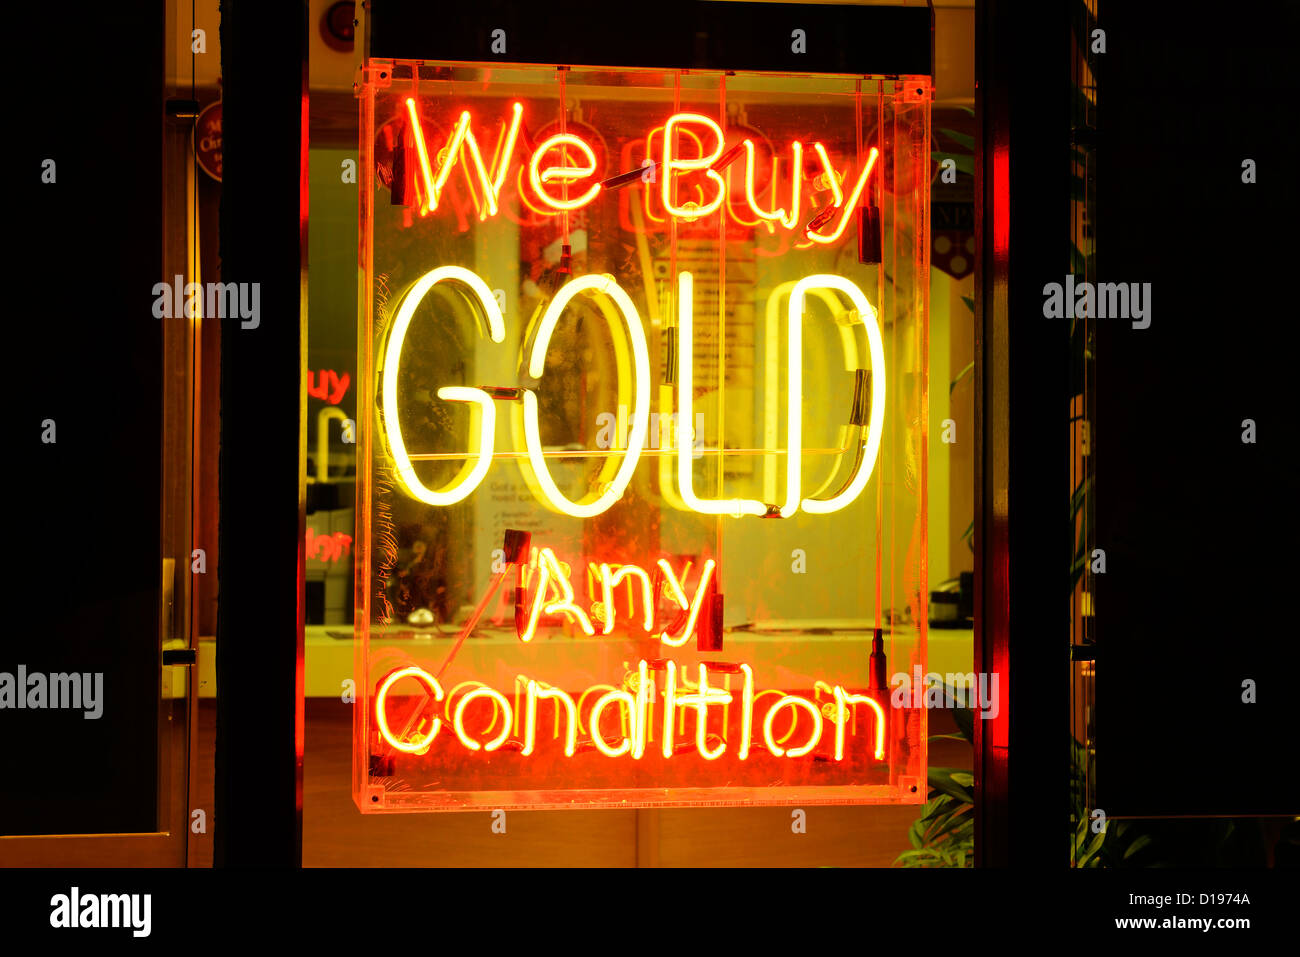 We Buy Gold Any Condition neon sign - Stock Image